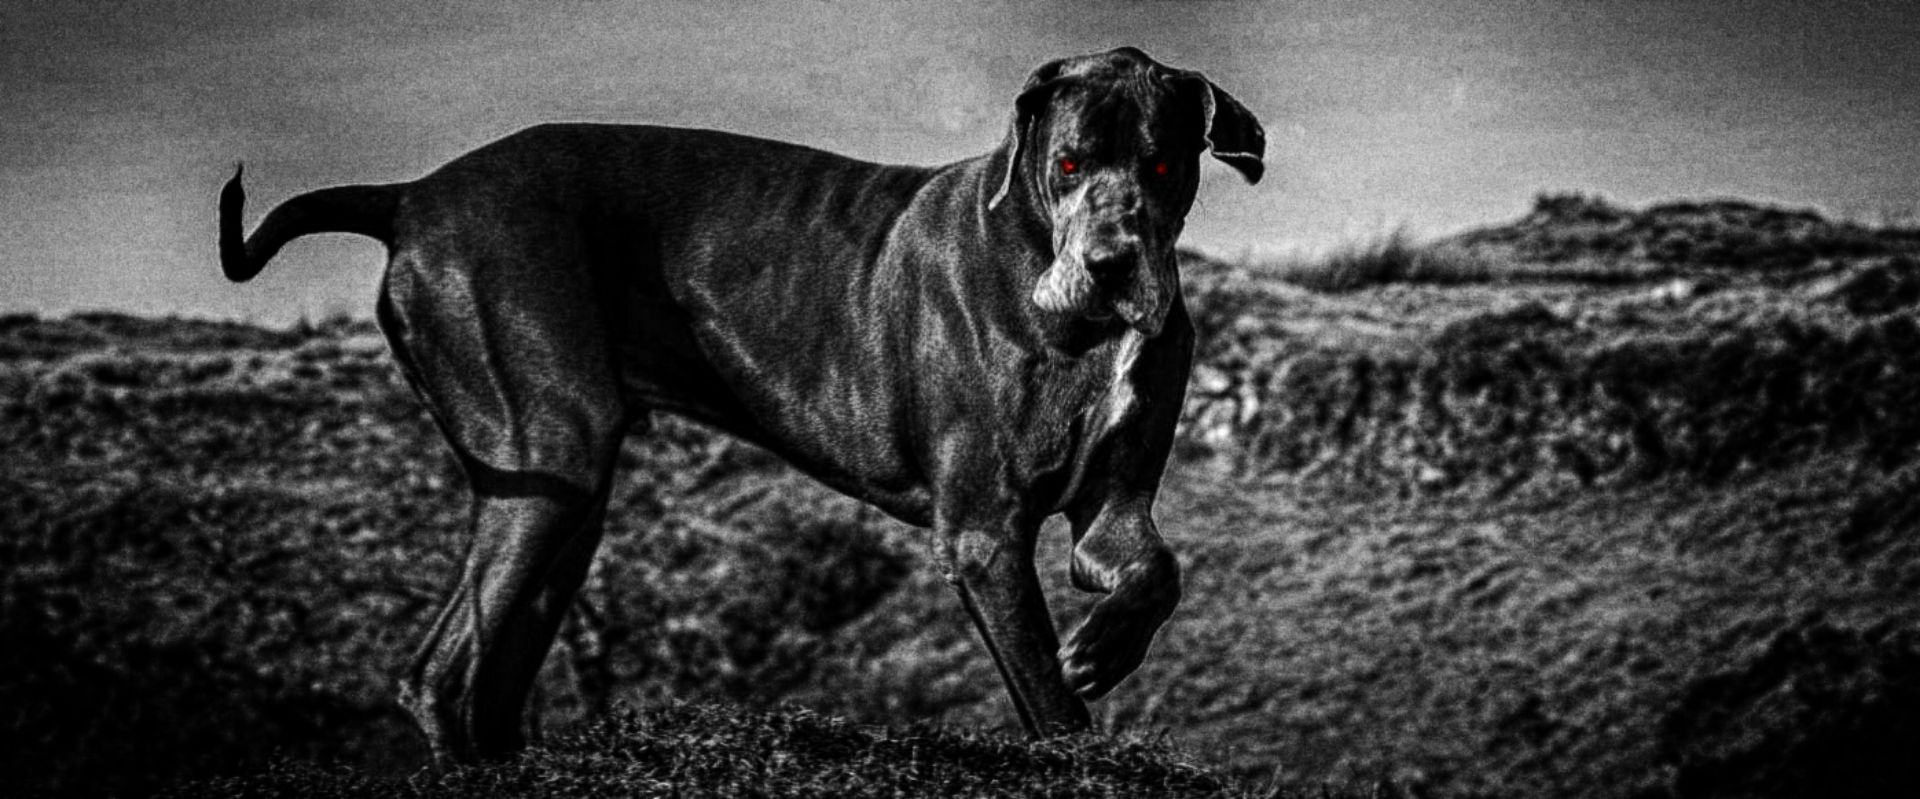 The Hound of the Baskervilles on Dartmoor